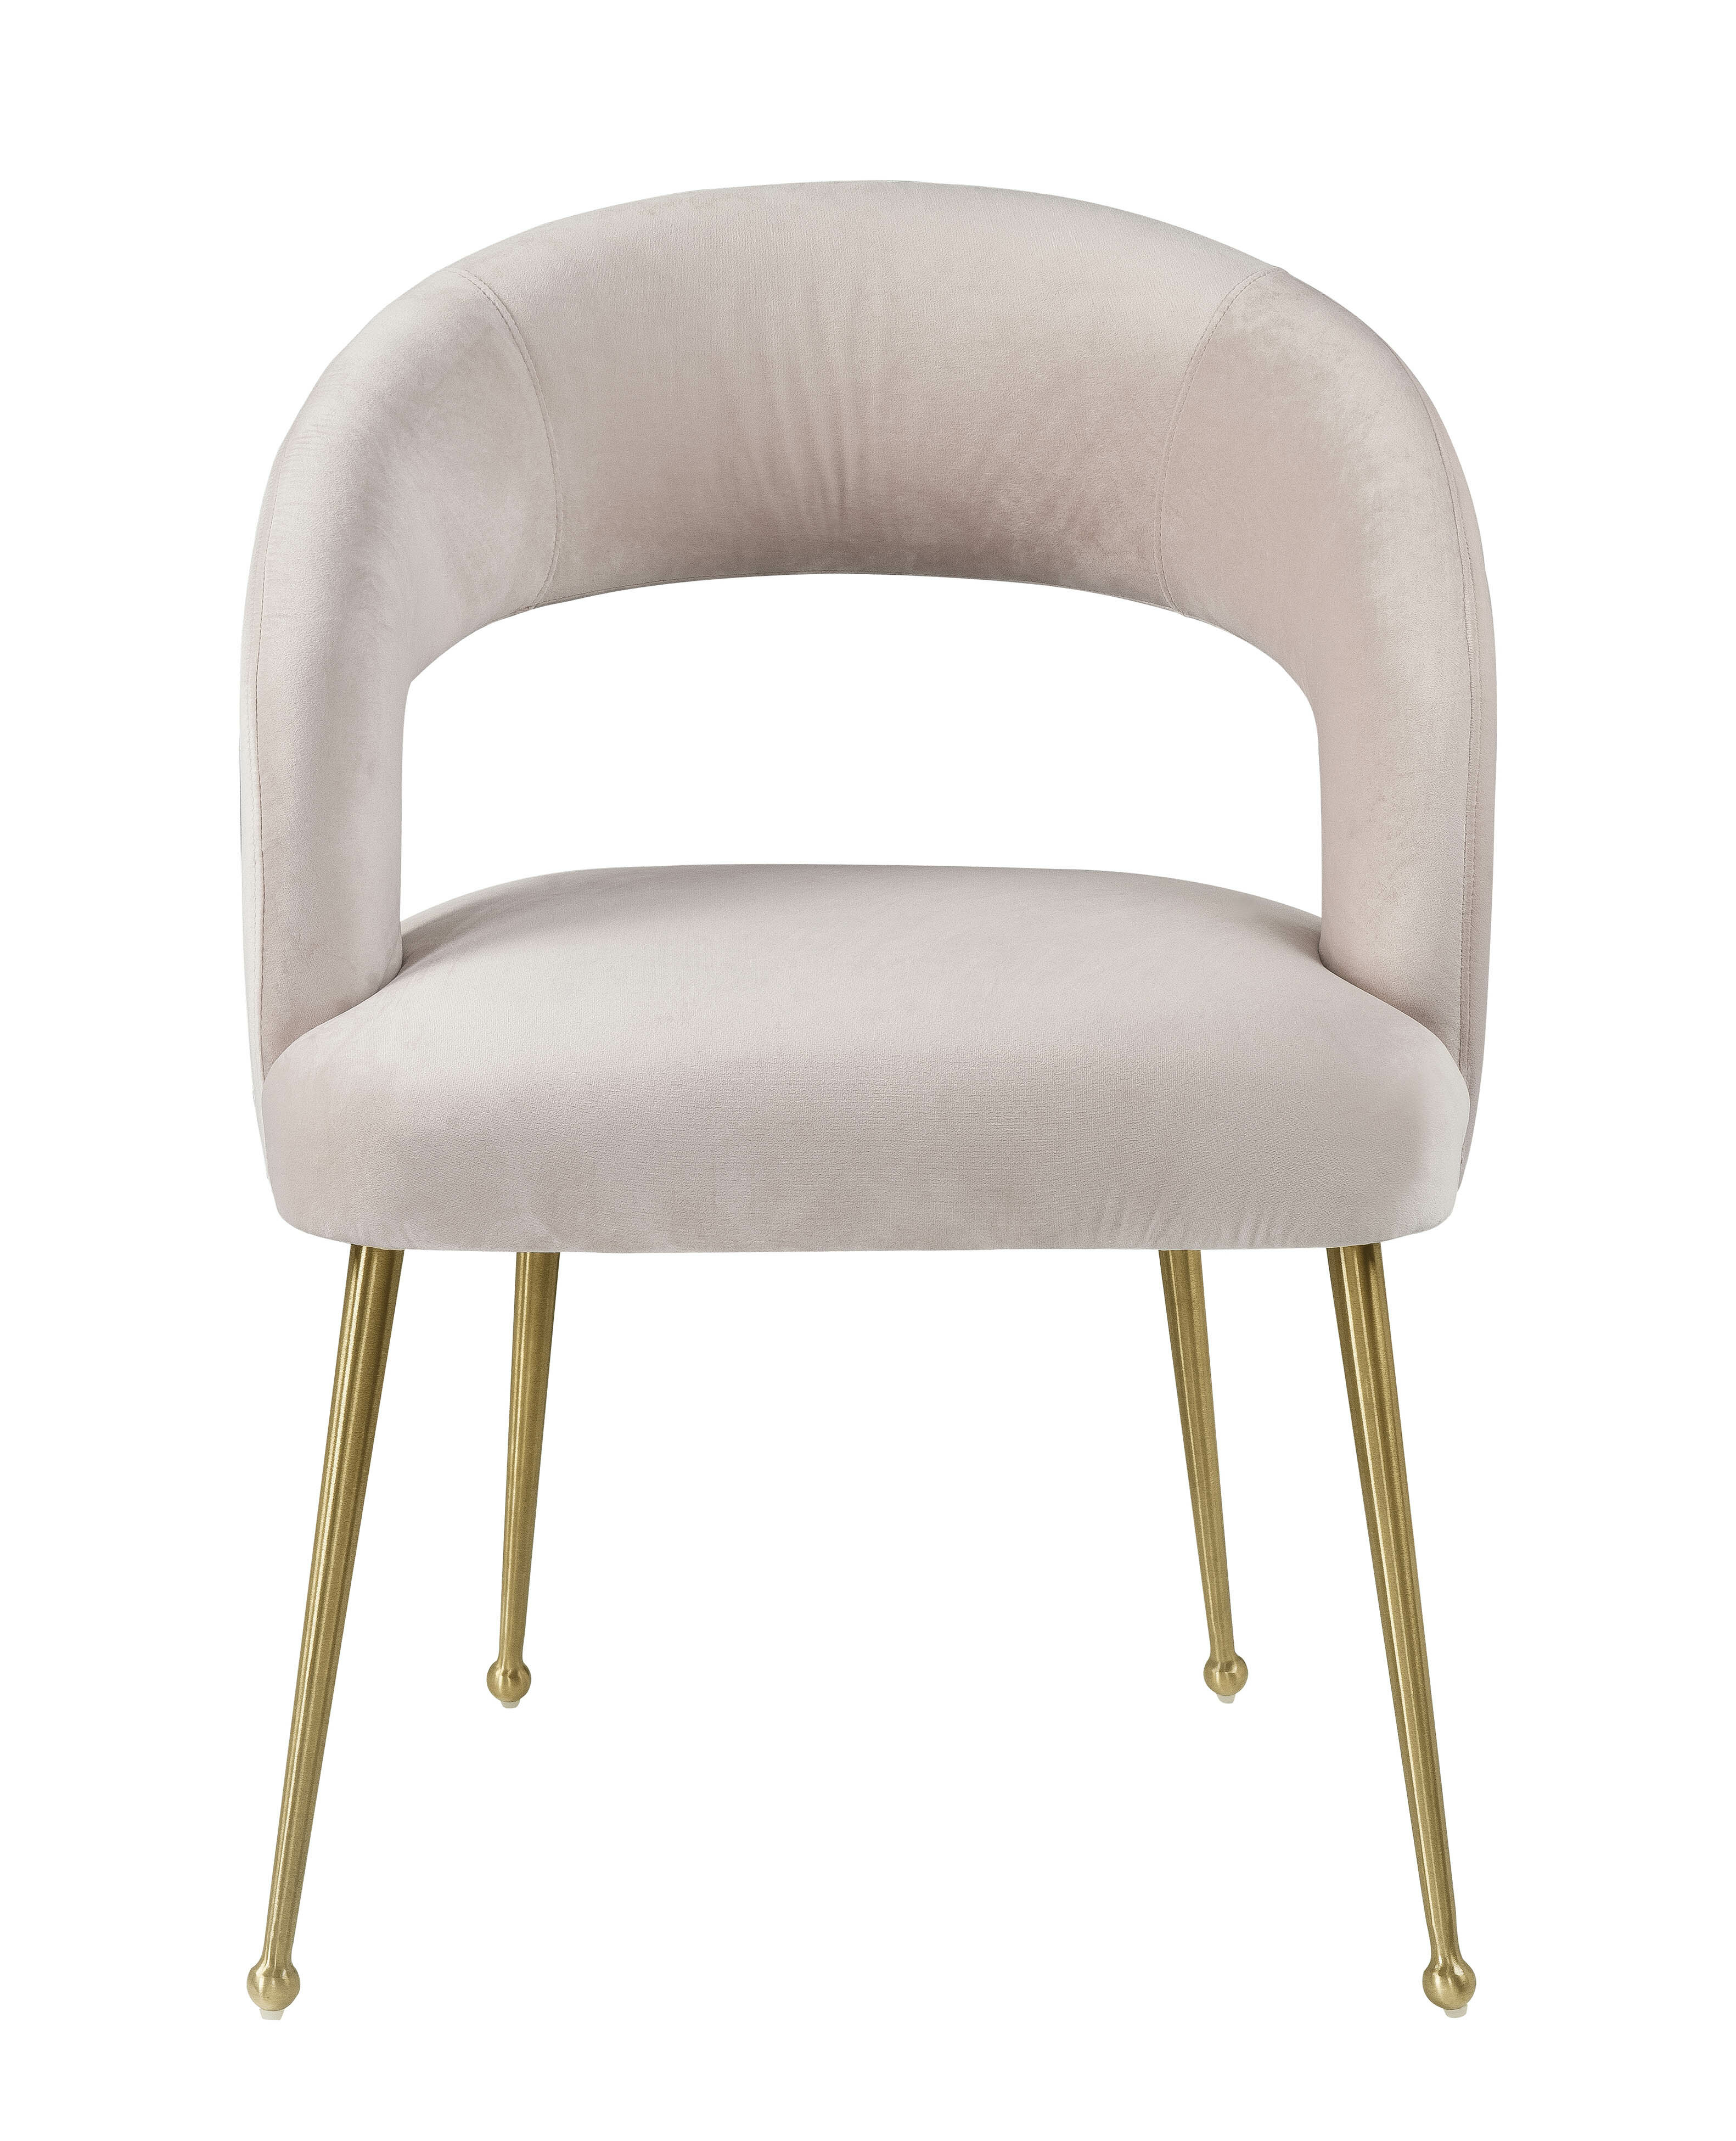 Stupendous Newark Upholstered Dining Chair Download Free Architecture Designs Scobabritishbridgeorg